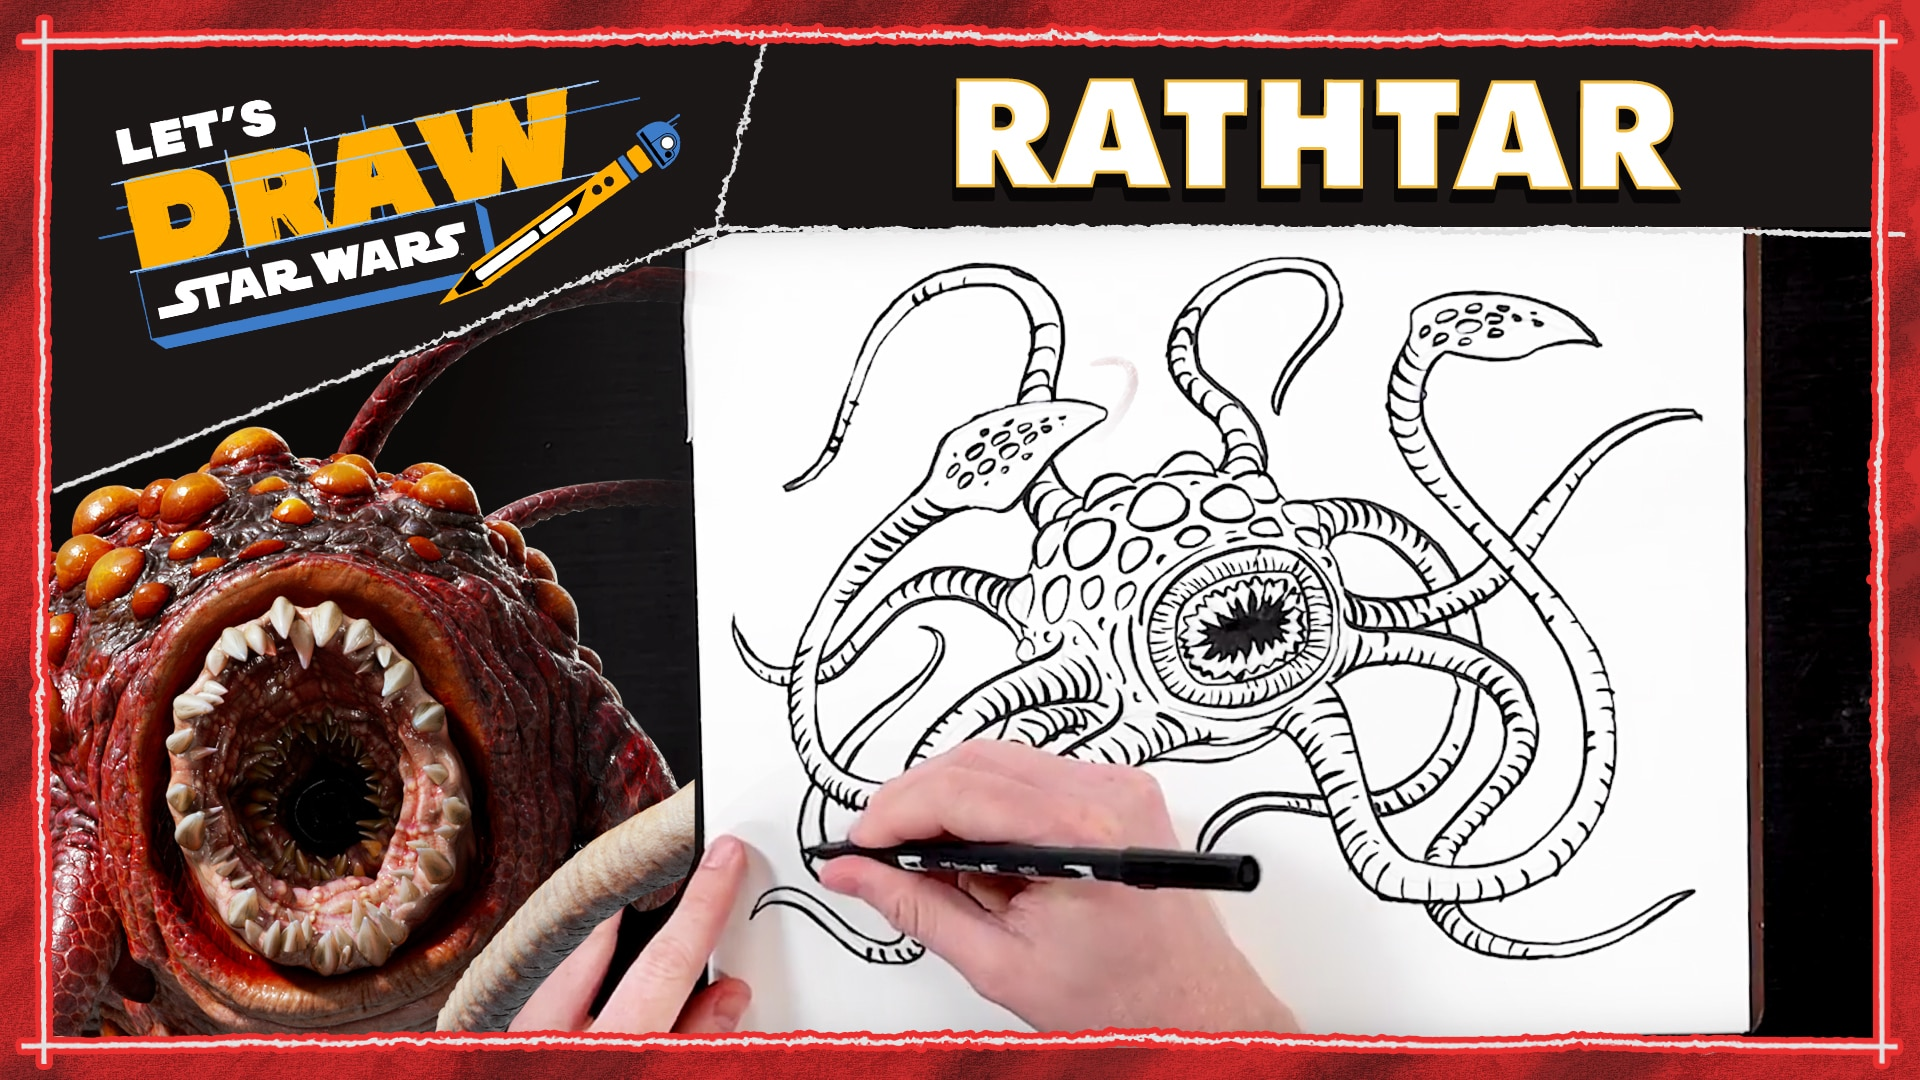 How to Draw a Rathtar | Let's Draw Star Wars